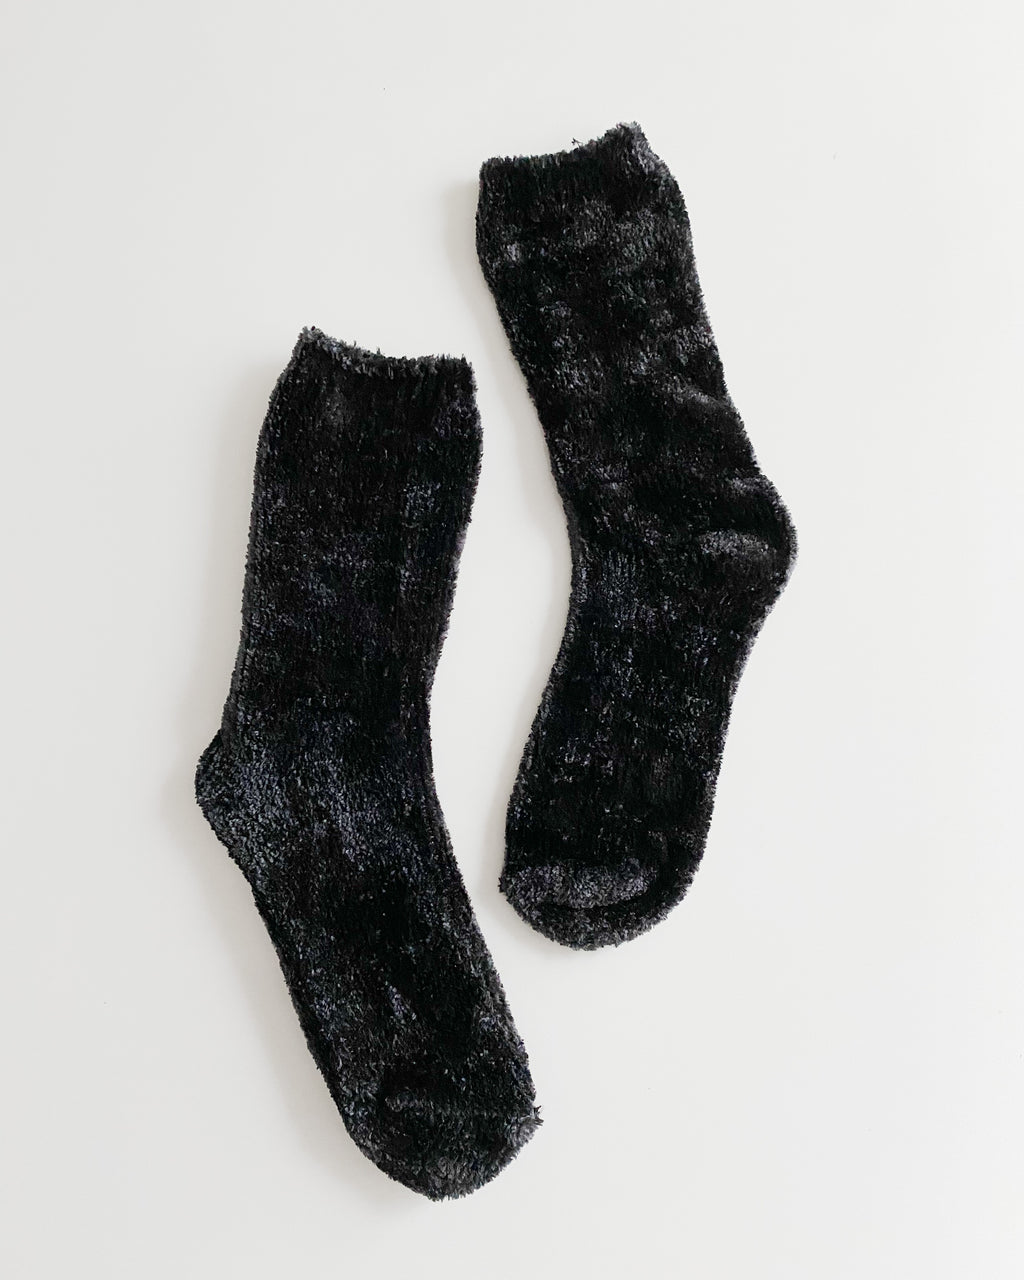 Cozy Day Socks in Black